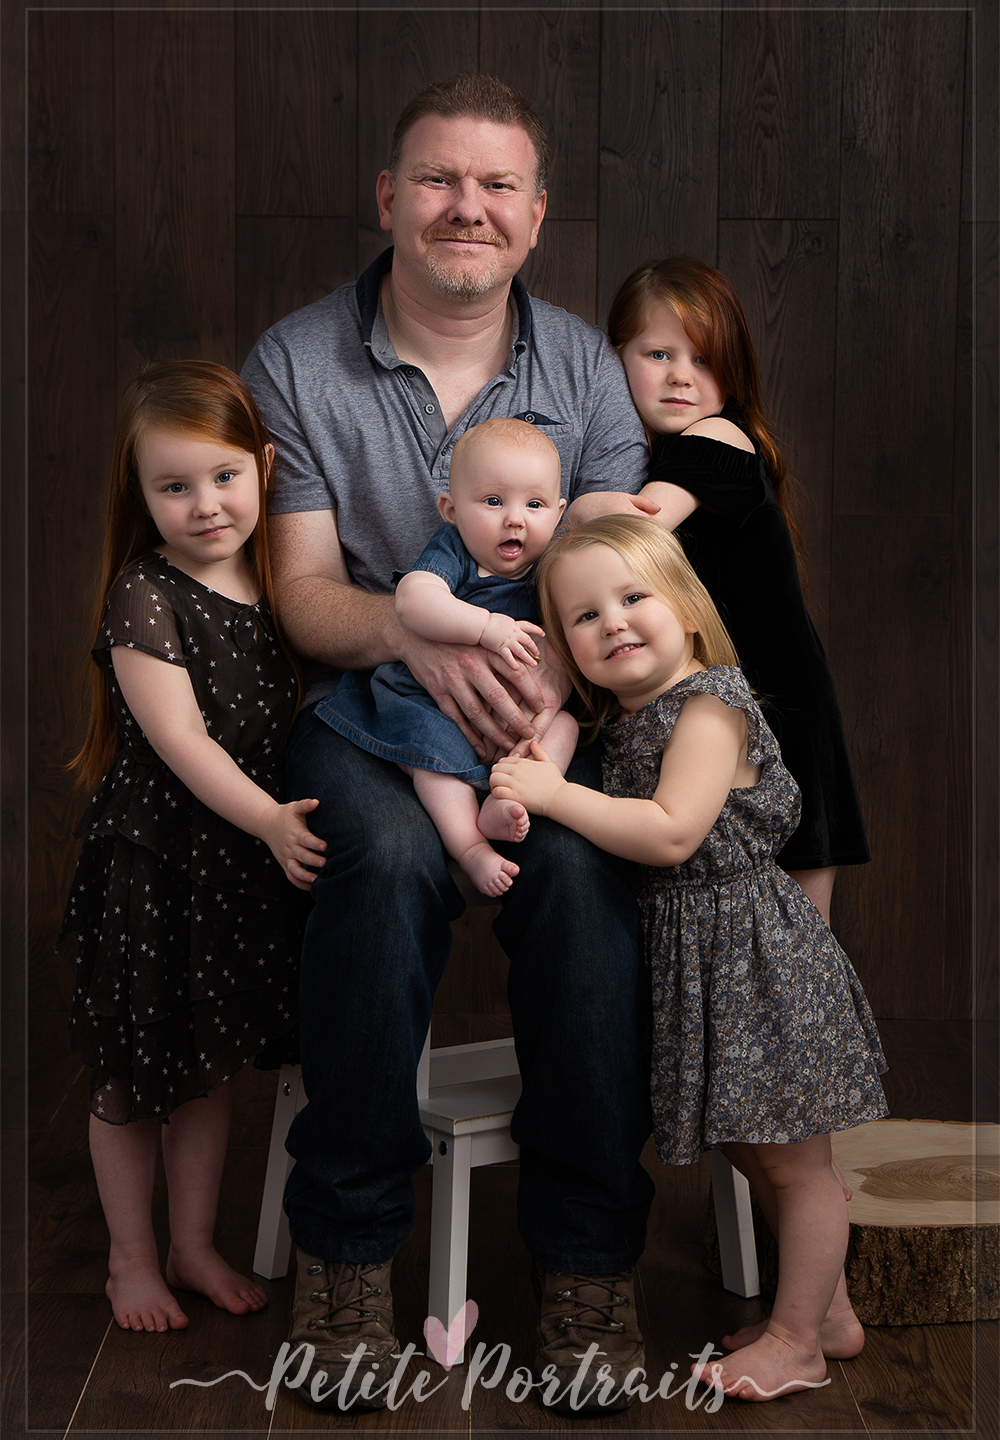 family-photographer-sheffield-childrens-photography-rotherham-petite-portraits-daddy-daughters